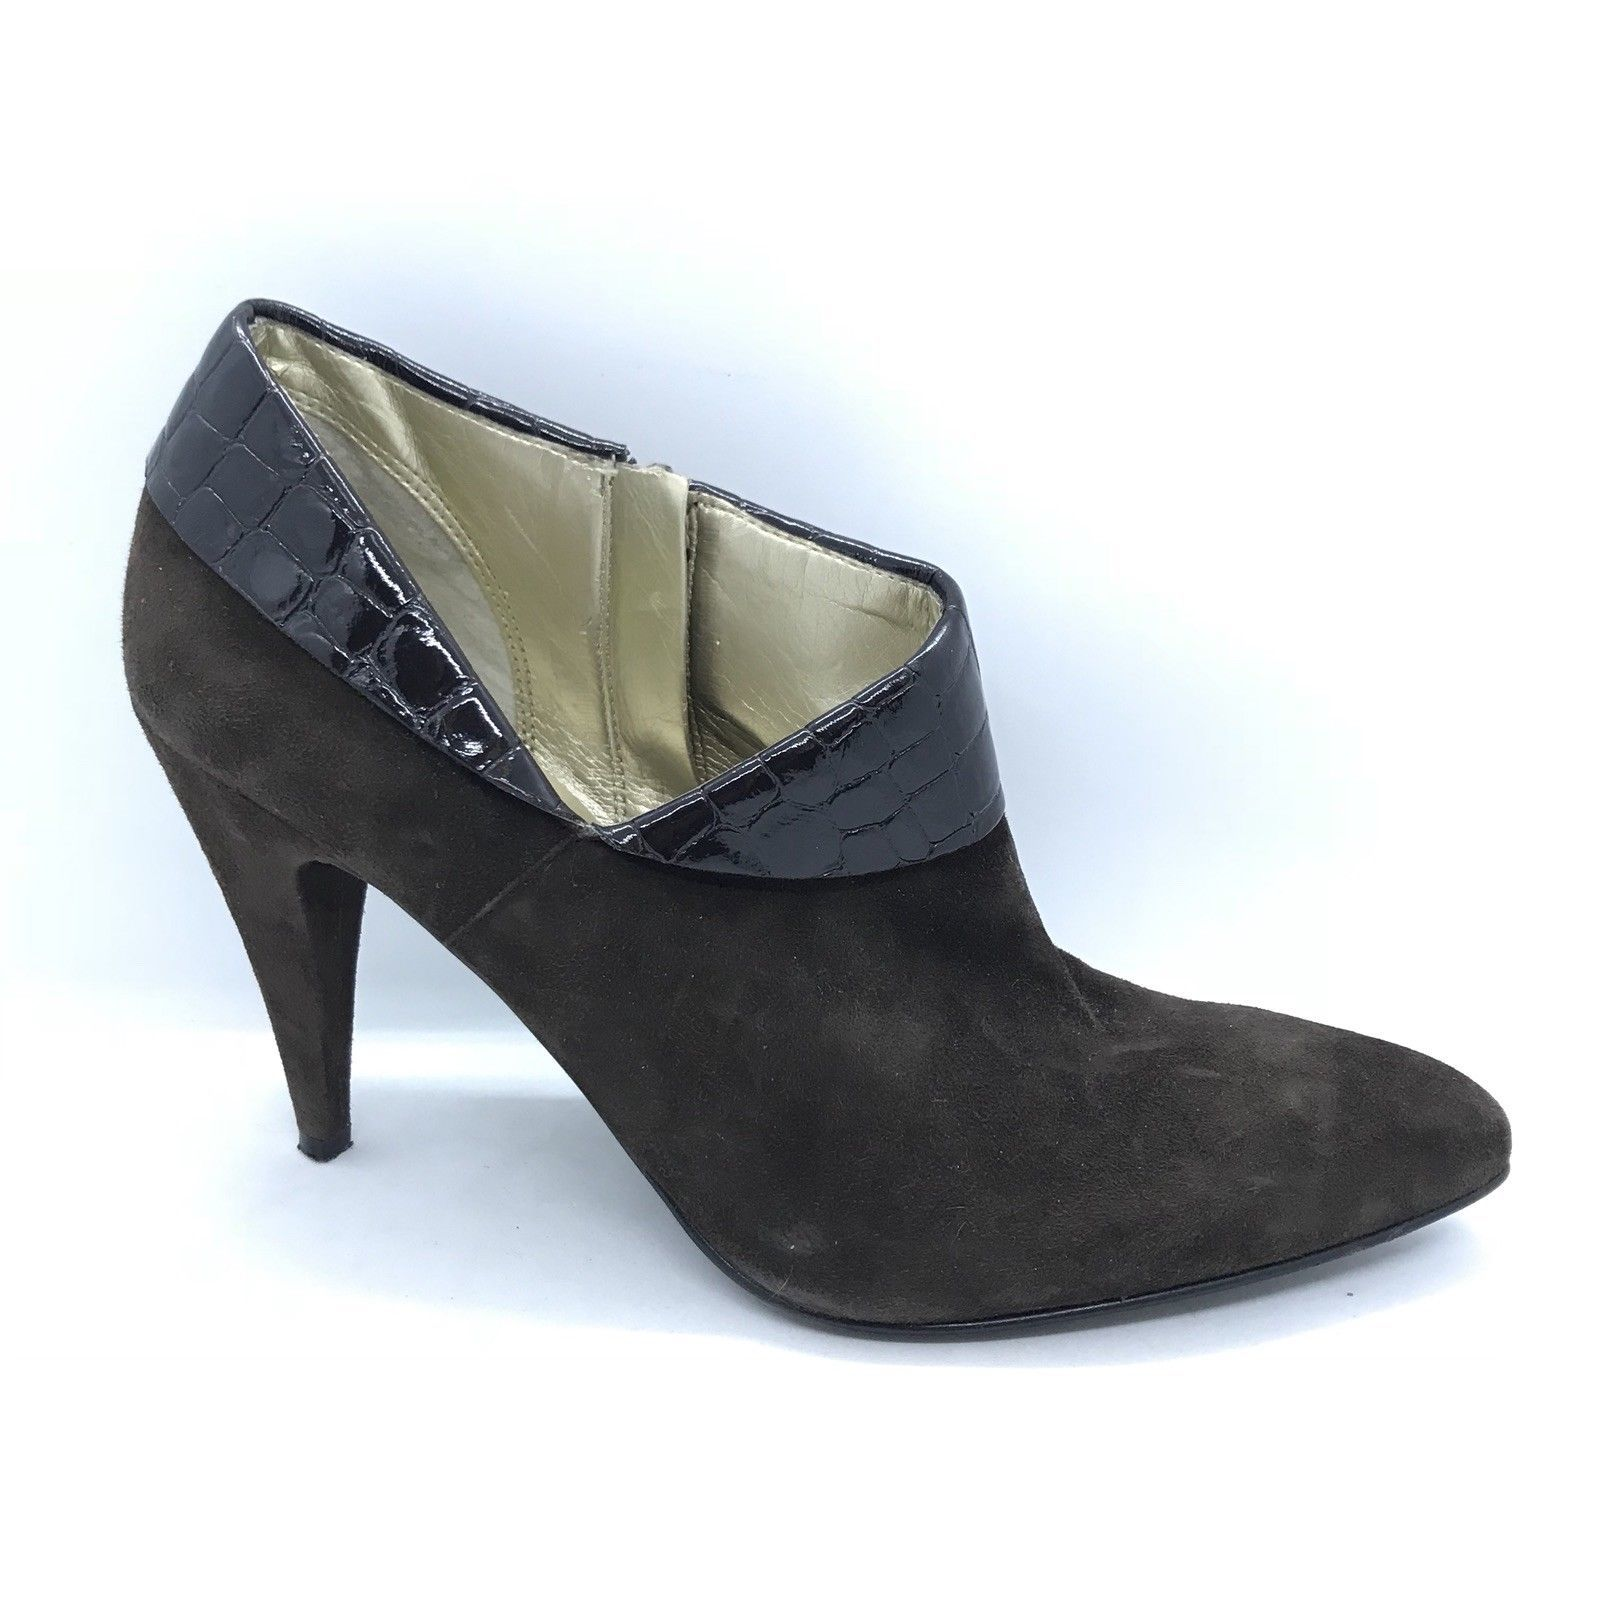 238e3f731d1b Guess Heeled Booties Women Size 7.5M Suede Leather Brown Shoes -  30.00